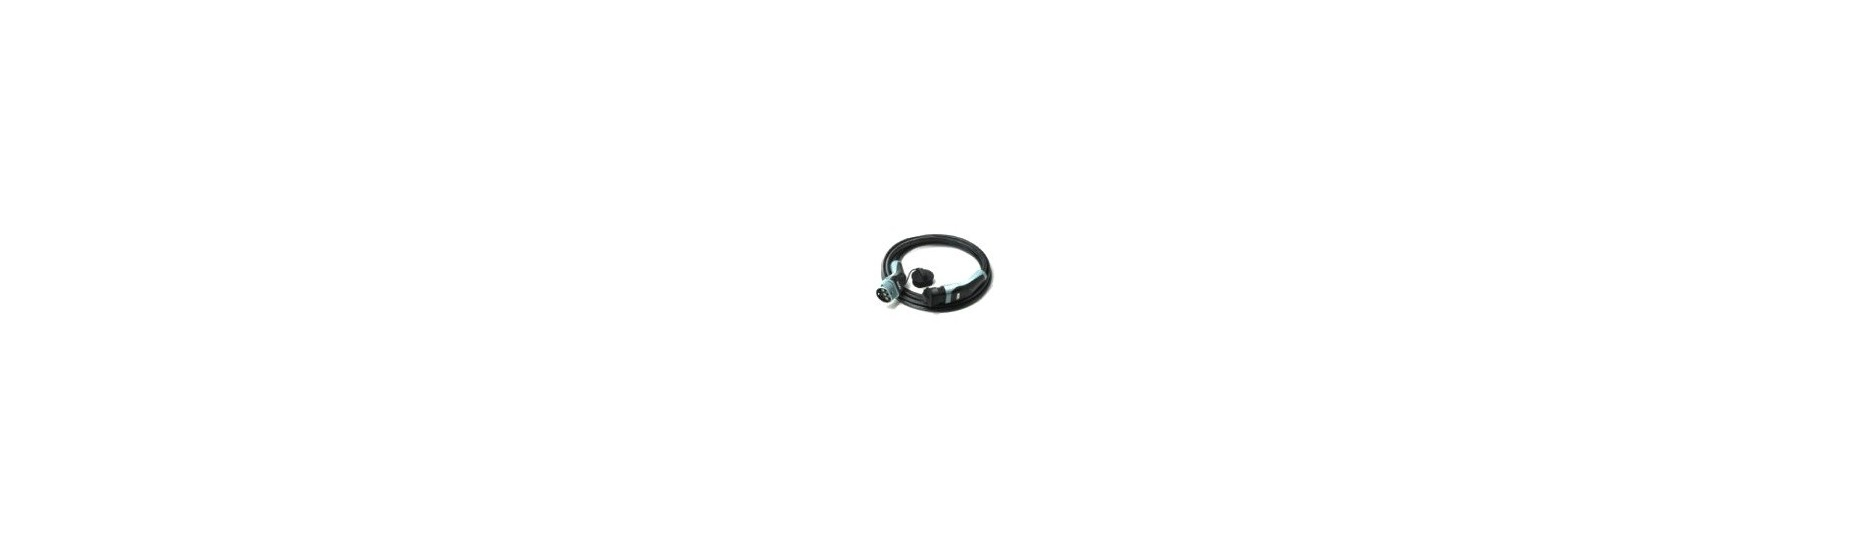 Peugeot Electrical Accessories